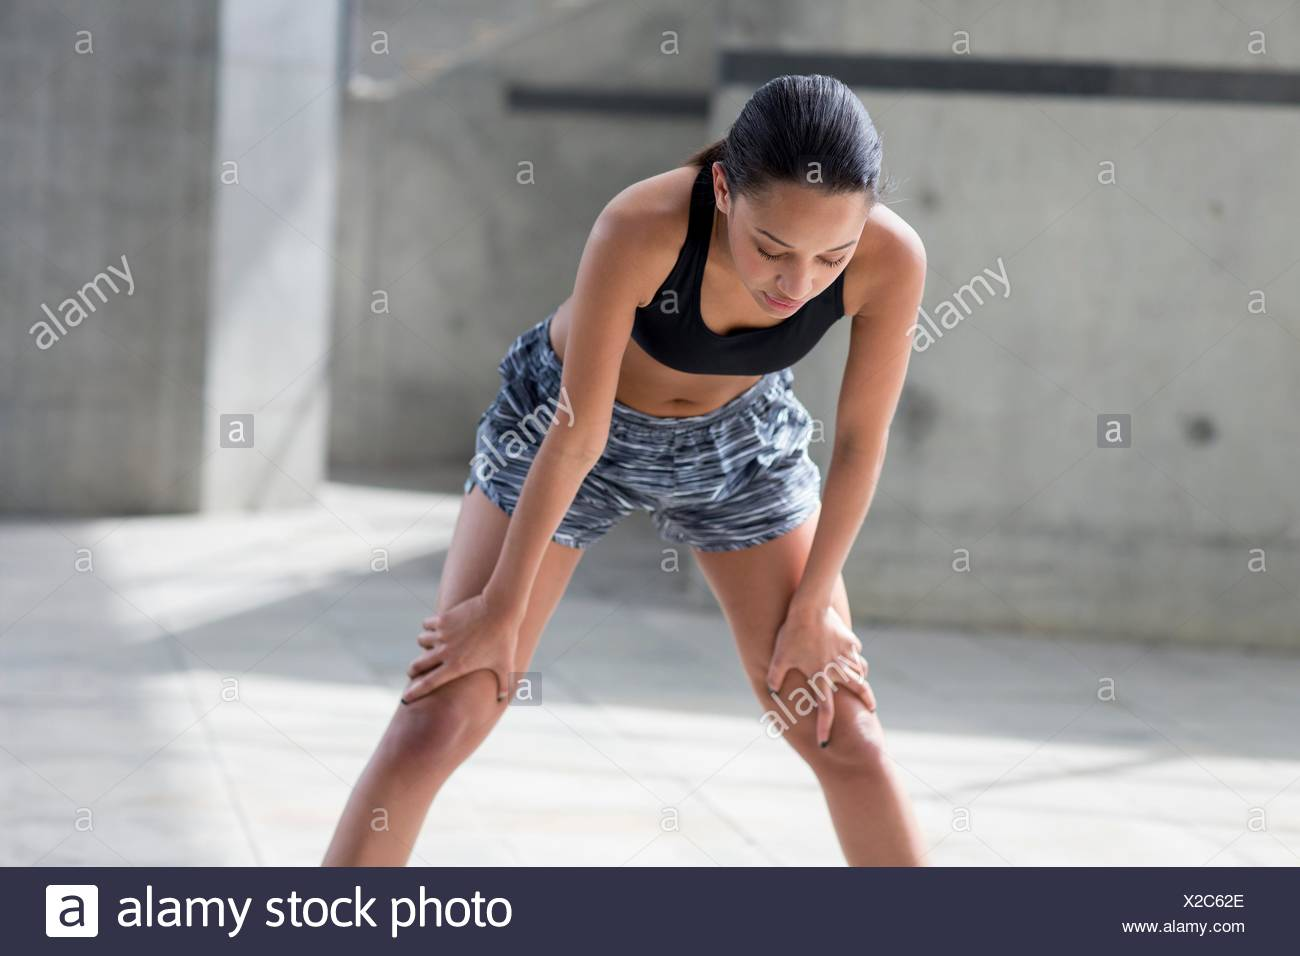 MODEL RELEASED. Young woman recovering after exercise. - Stock Image